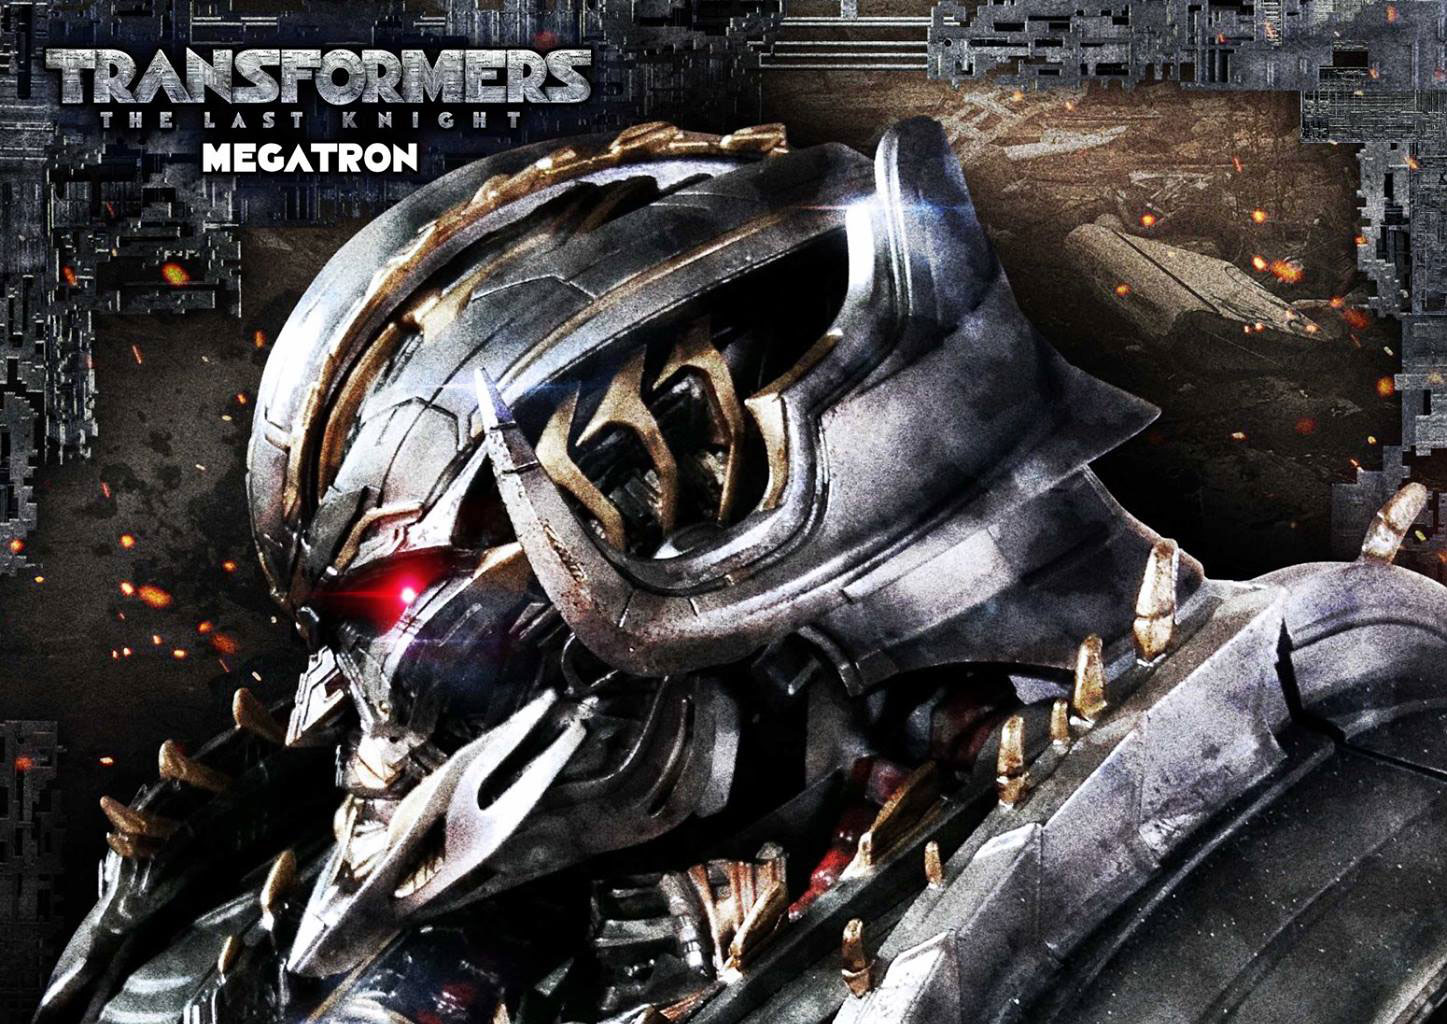 transformers-the-last-knight-megatron-statue-prime-1-studio-teaser